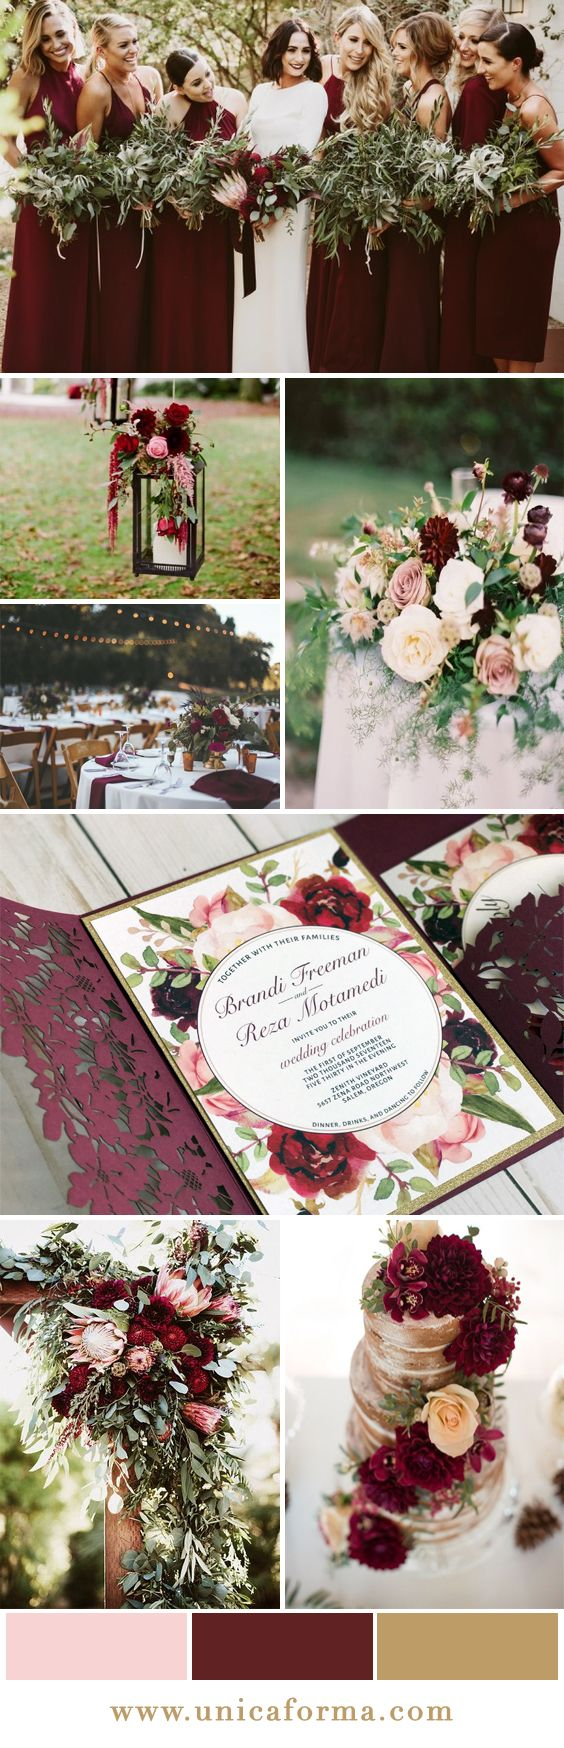 Marsala blush and gold wedding. Marsala and blush wedding. Burgundy and blush wedding. Maroon and blush wedding. Marsala bridesmaids dresses. Burgundy dresses. Marsala table setting. Blush and burgundy bouquet. Naked wedding cake. Marsala wedding cake. Marsala wedding decor. Wine wedding decor. Outdoor wedding. Whimsical wedding. Boho wedding. Rustic wedding. Invitations by Unica Forma.